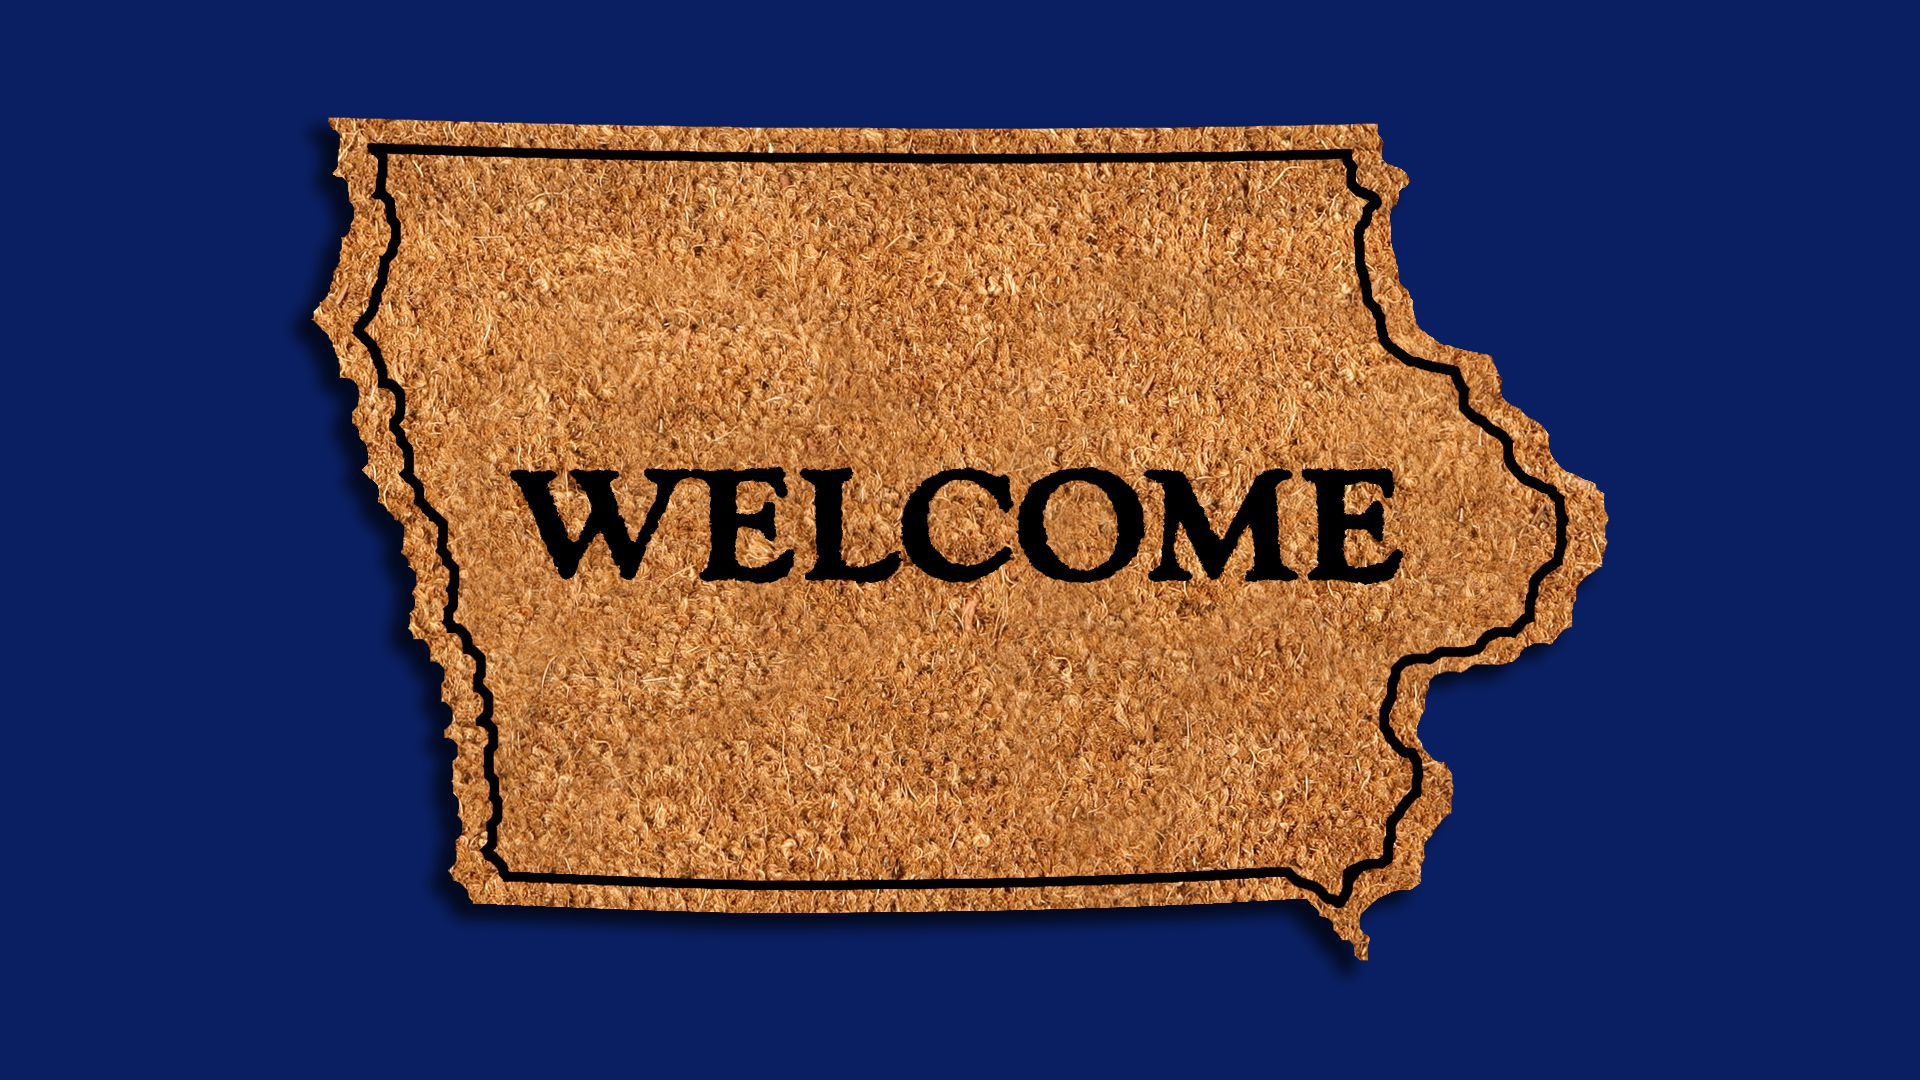 Illustration of a welcome mat in the shape of Iowa.